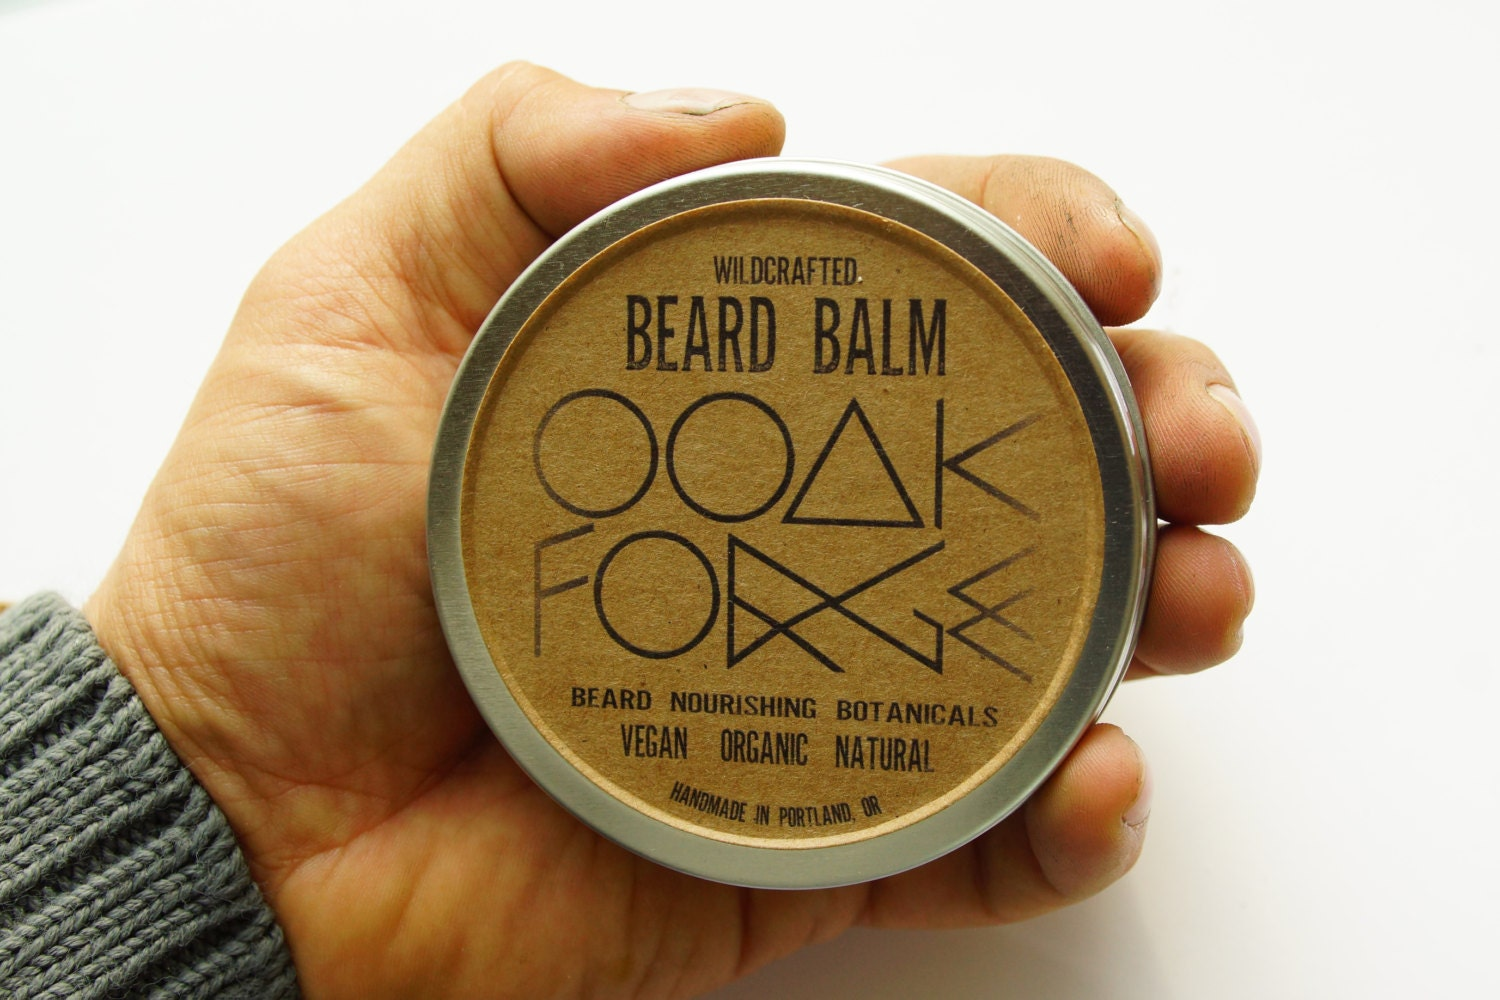 SALE OOAK Forge Wildcrafted Beard Balm